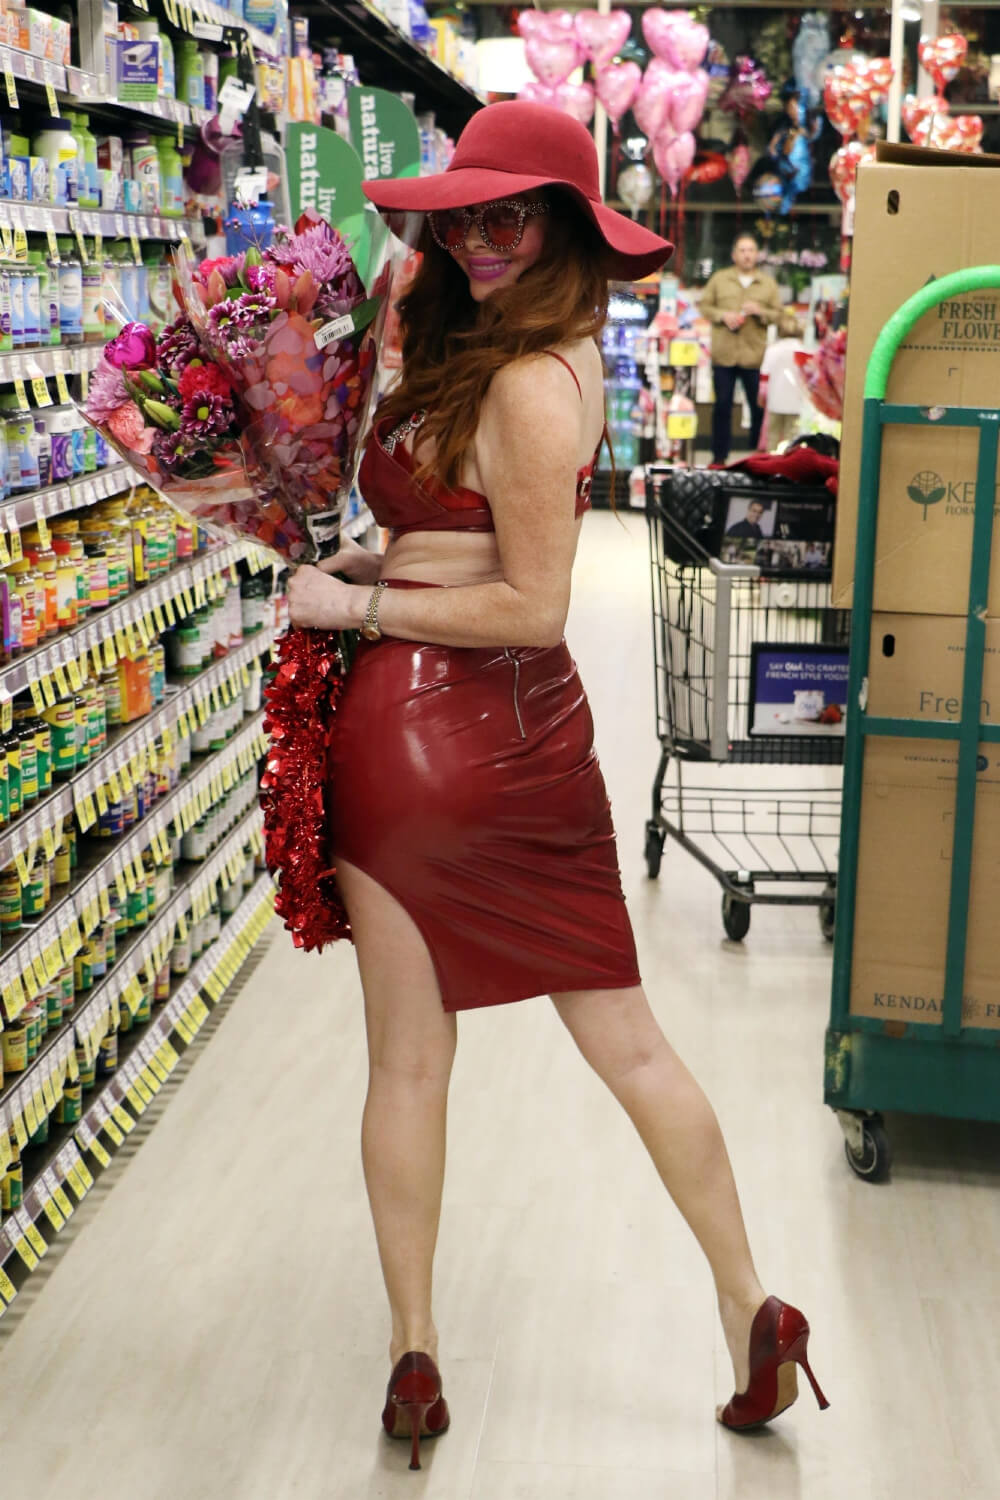 Phoebe Price displays her Valentine's Day outfit shopping